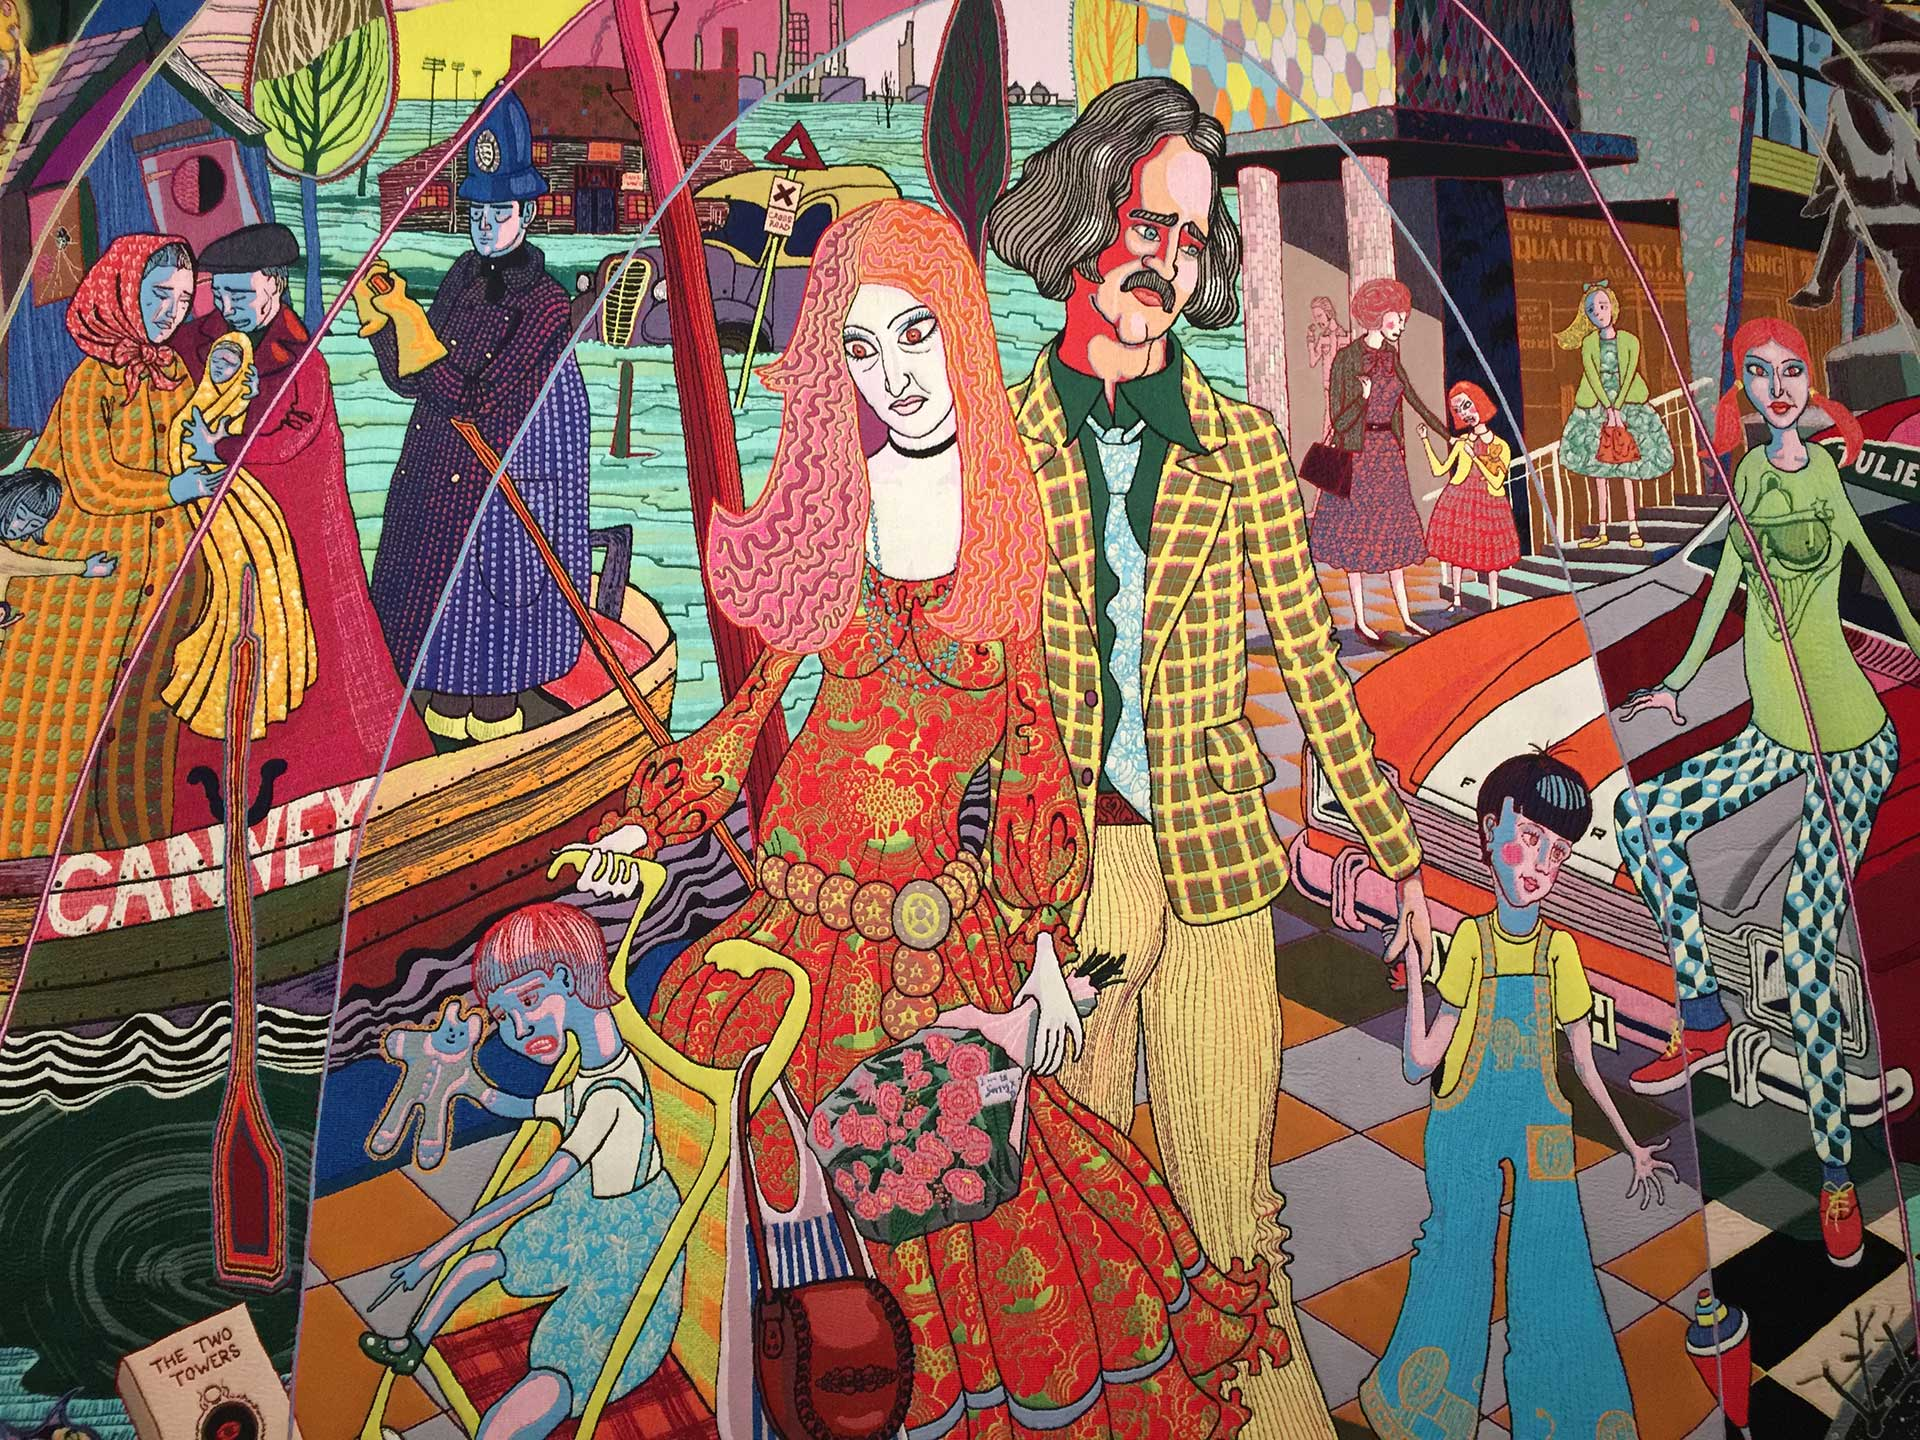 The Story of a Life by Grayson Perry, currently on display at New Brewery Arts in Cirencester